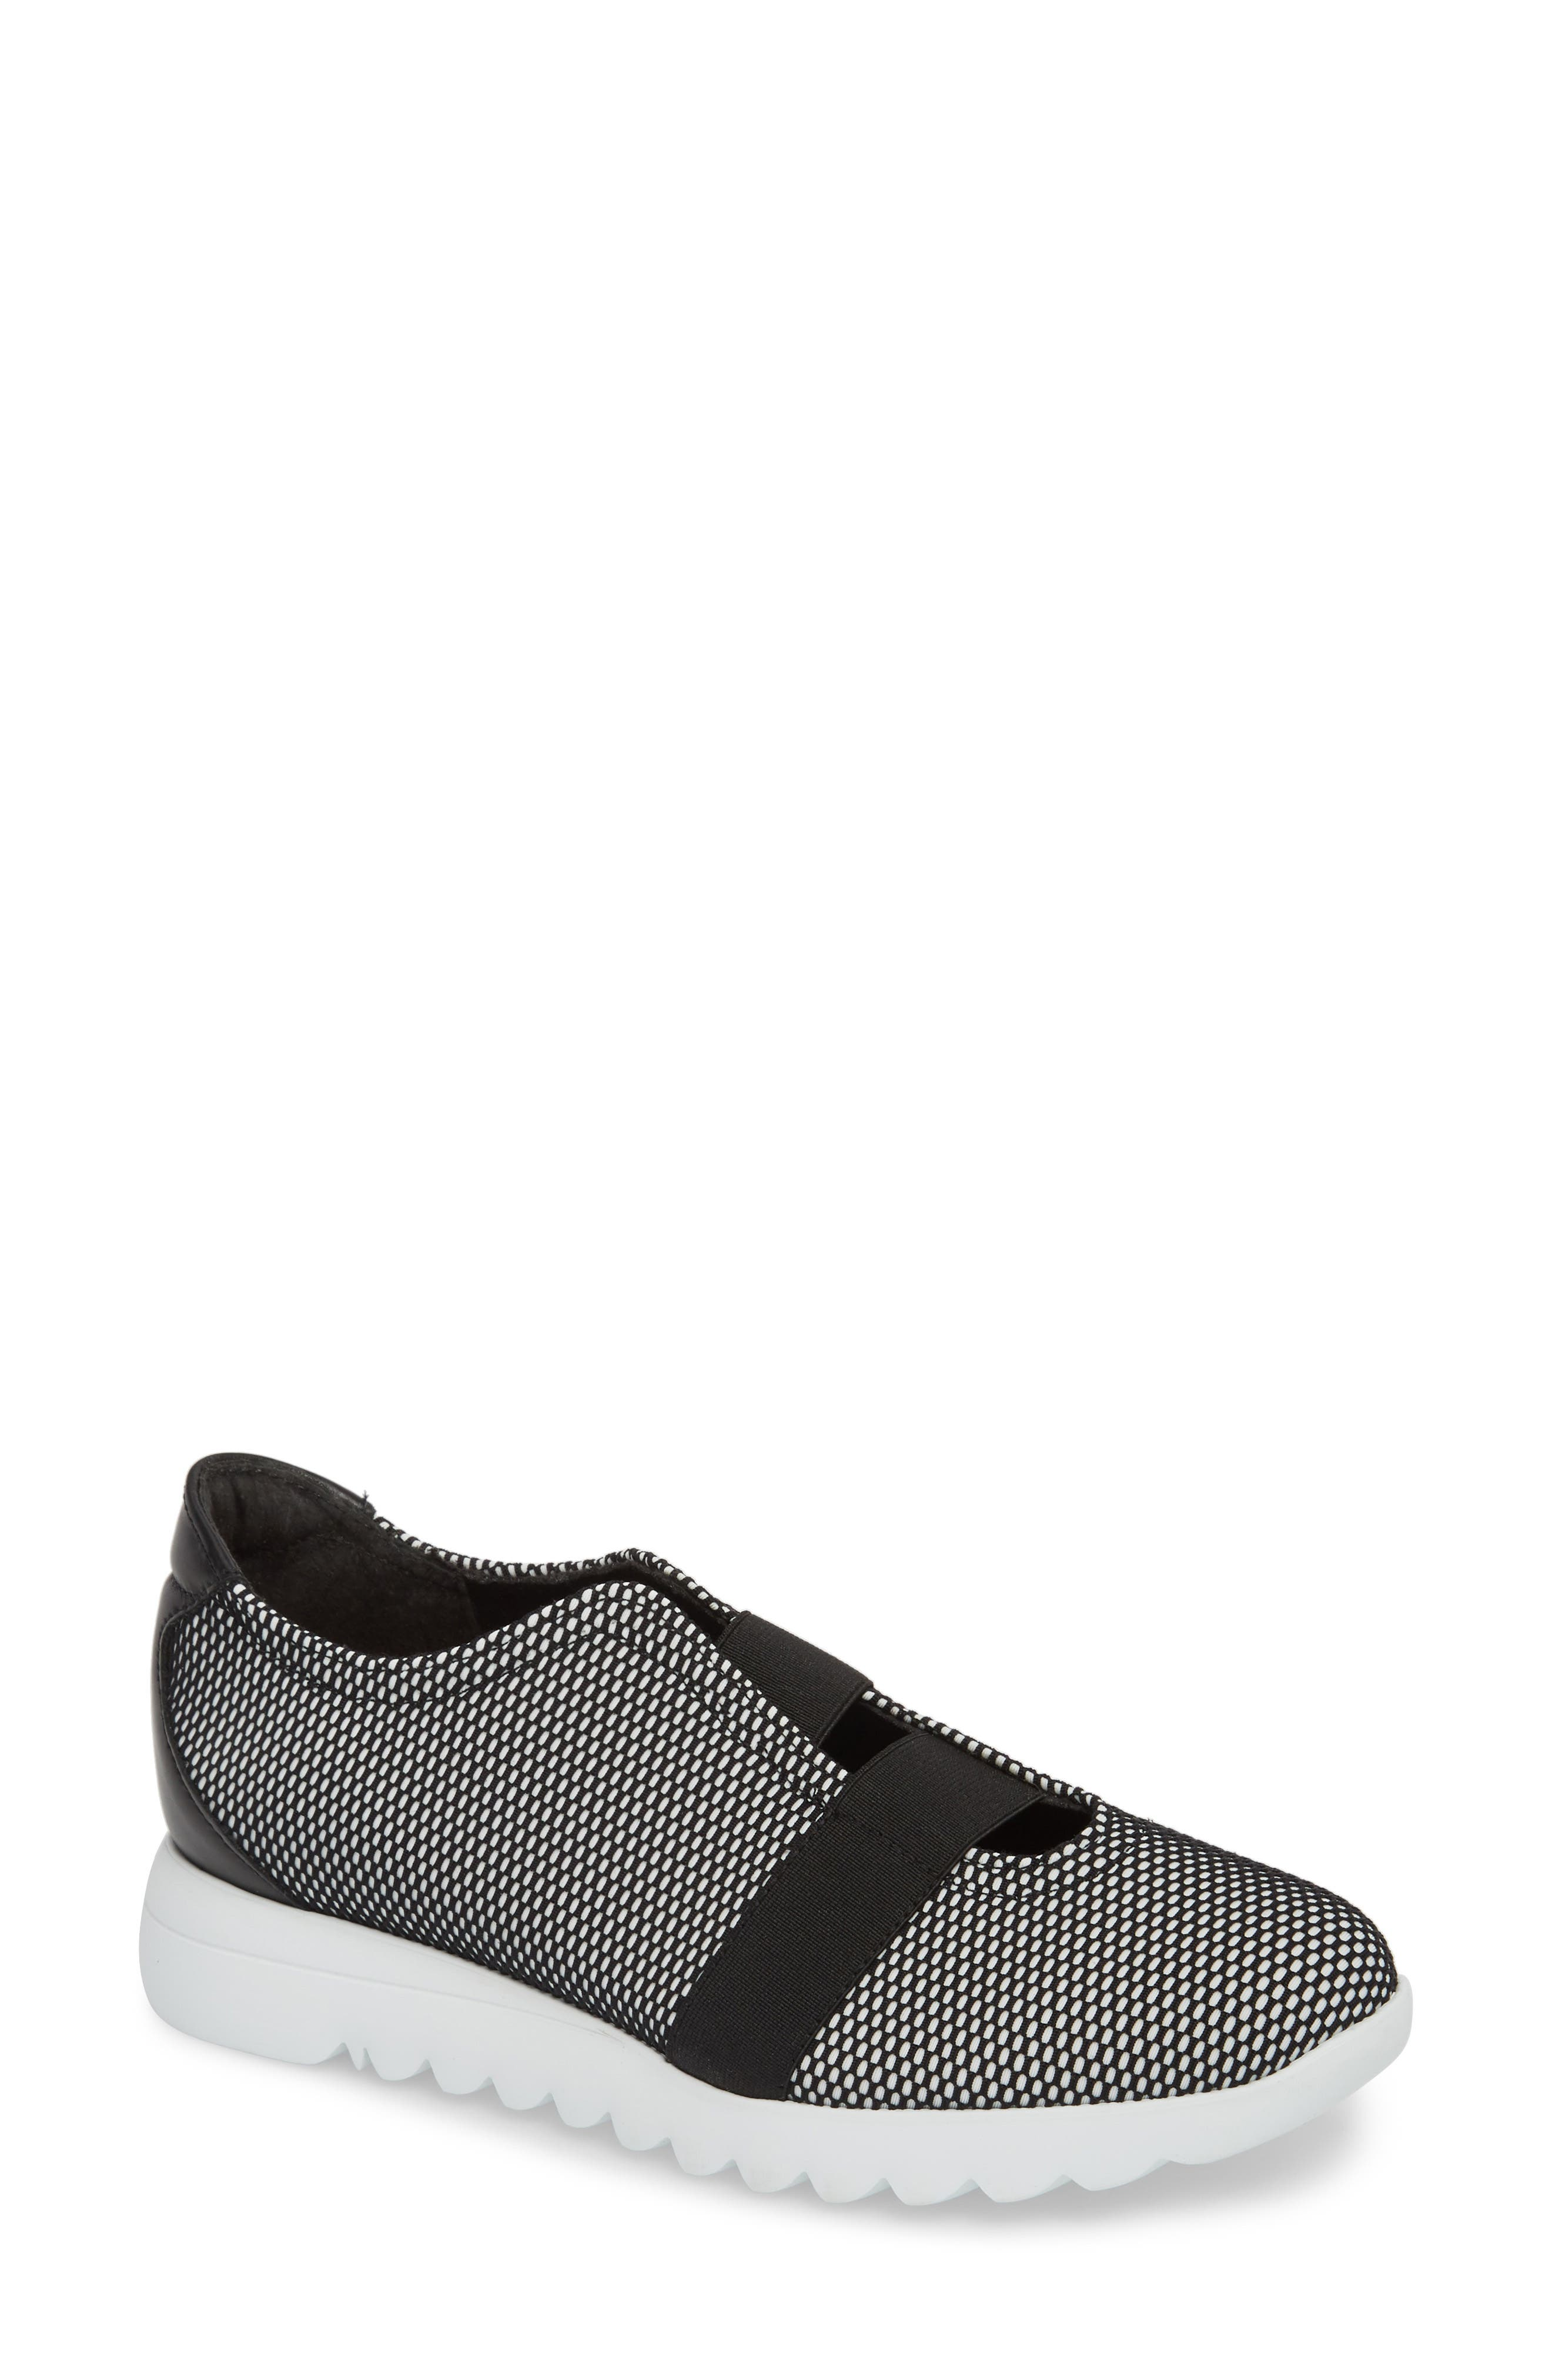 Alta Slip-On Sneaker,                             Main thumbnail 1, color,                             BLACK/ WHITE FABRIC